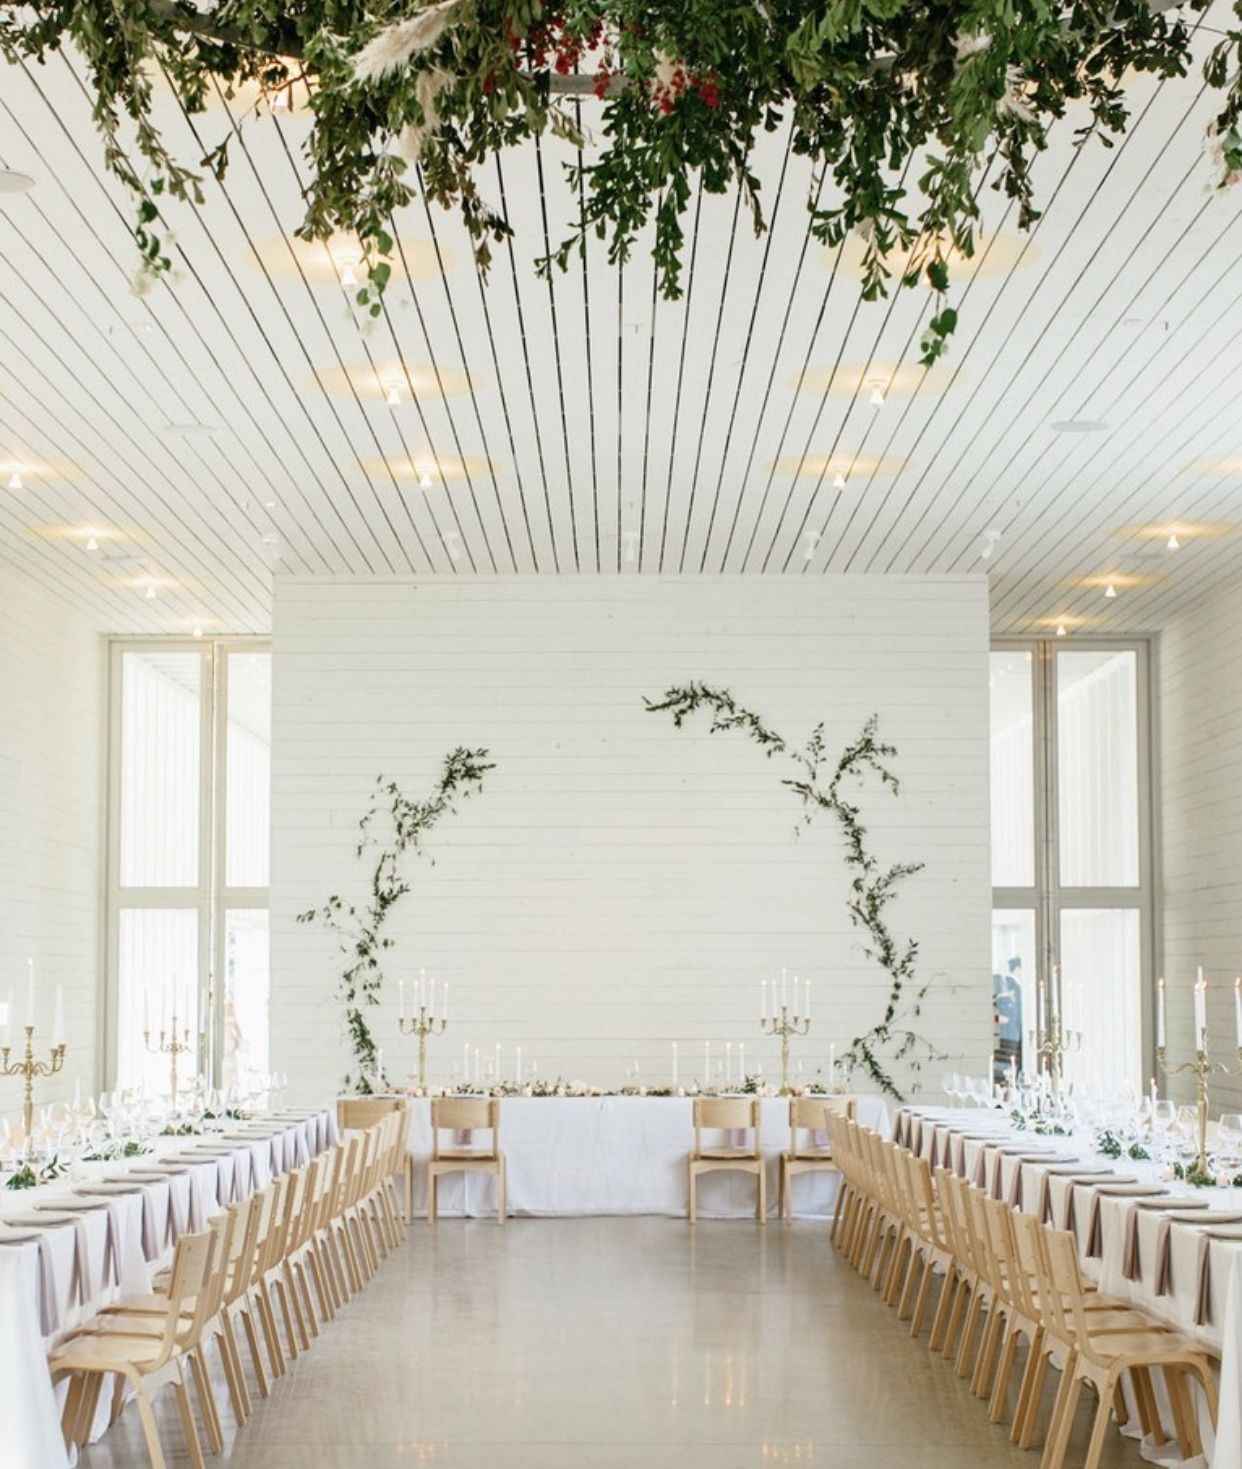 Modern Wedding Backdrop Ideas: Pin By Adam Burney On Wedding Shit